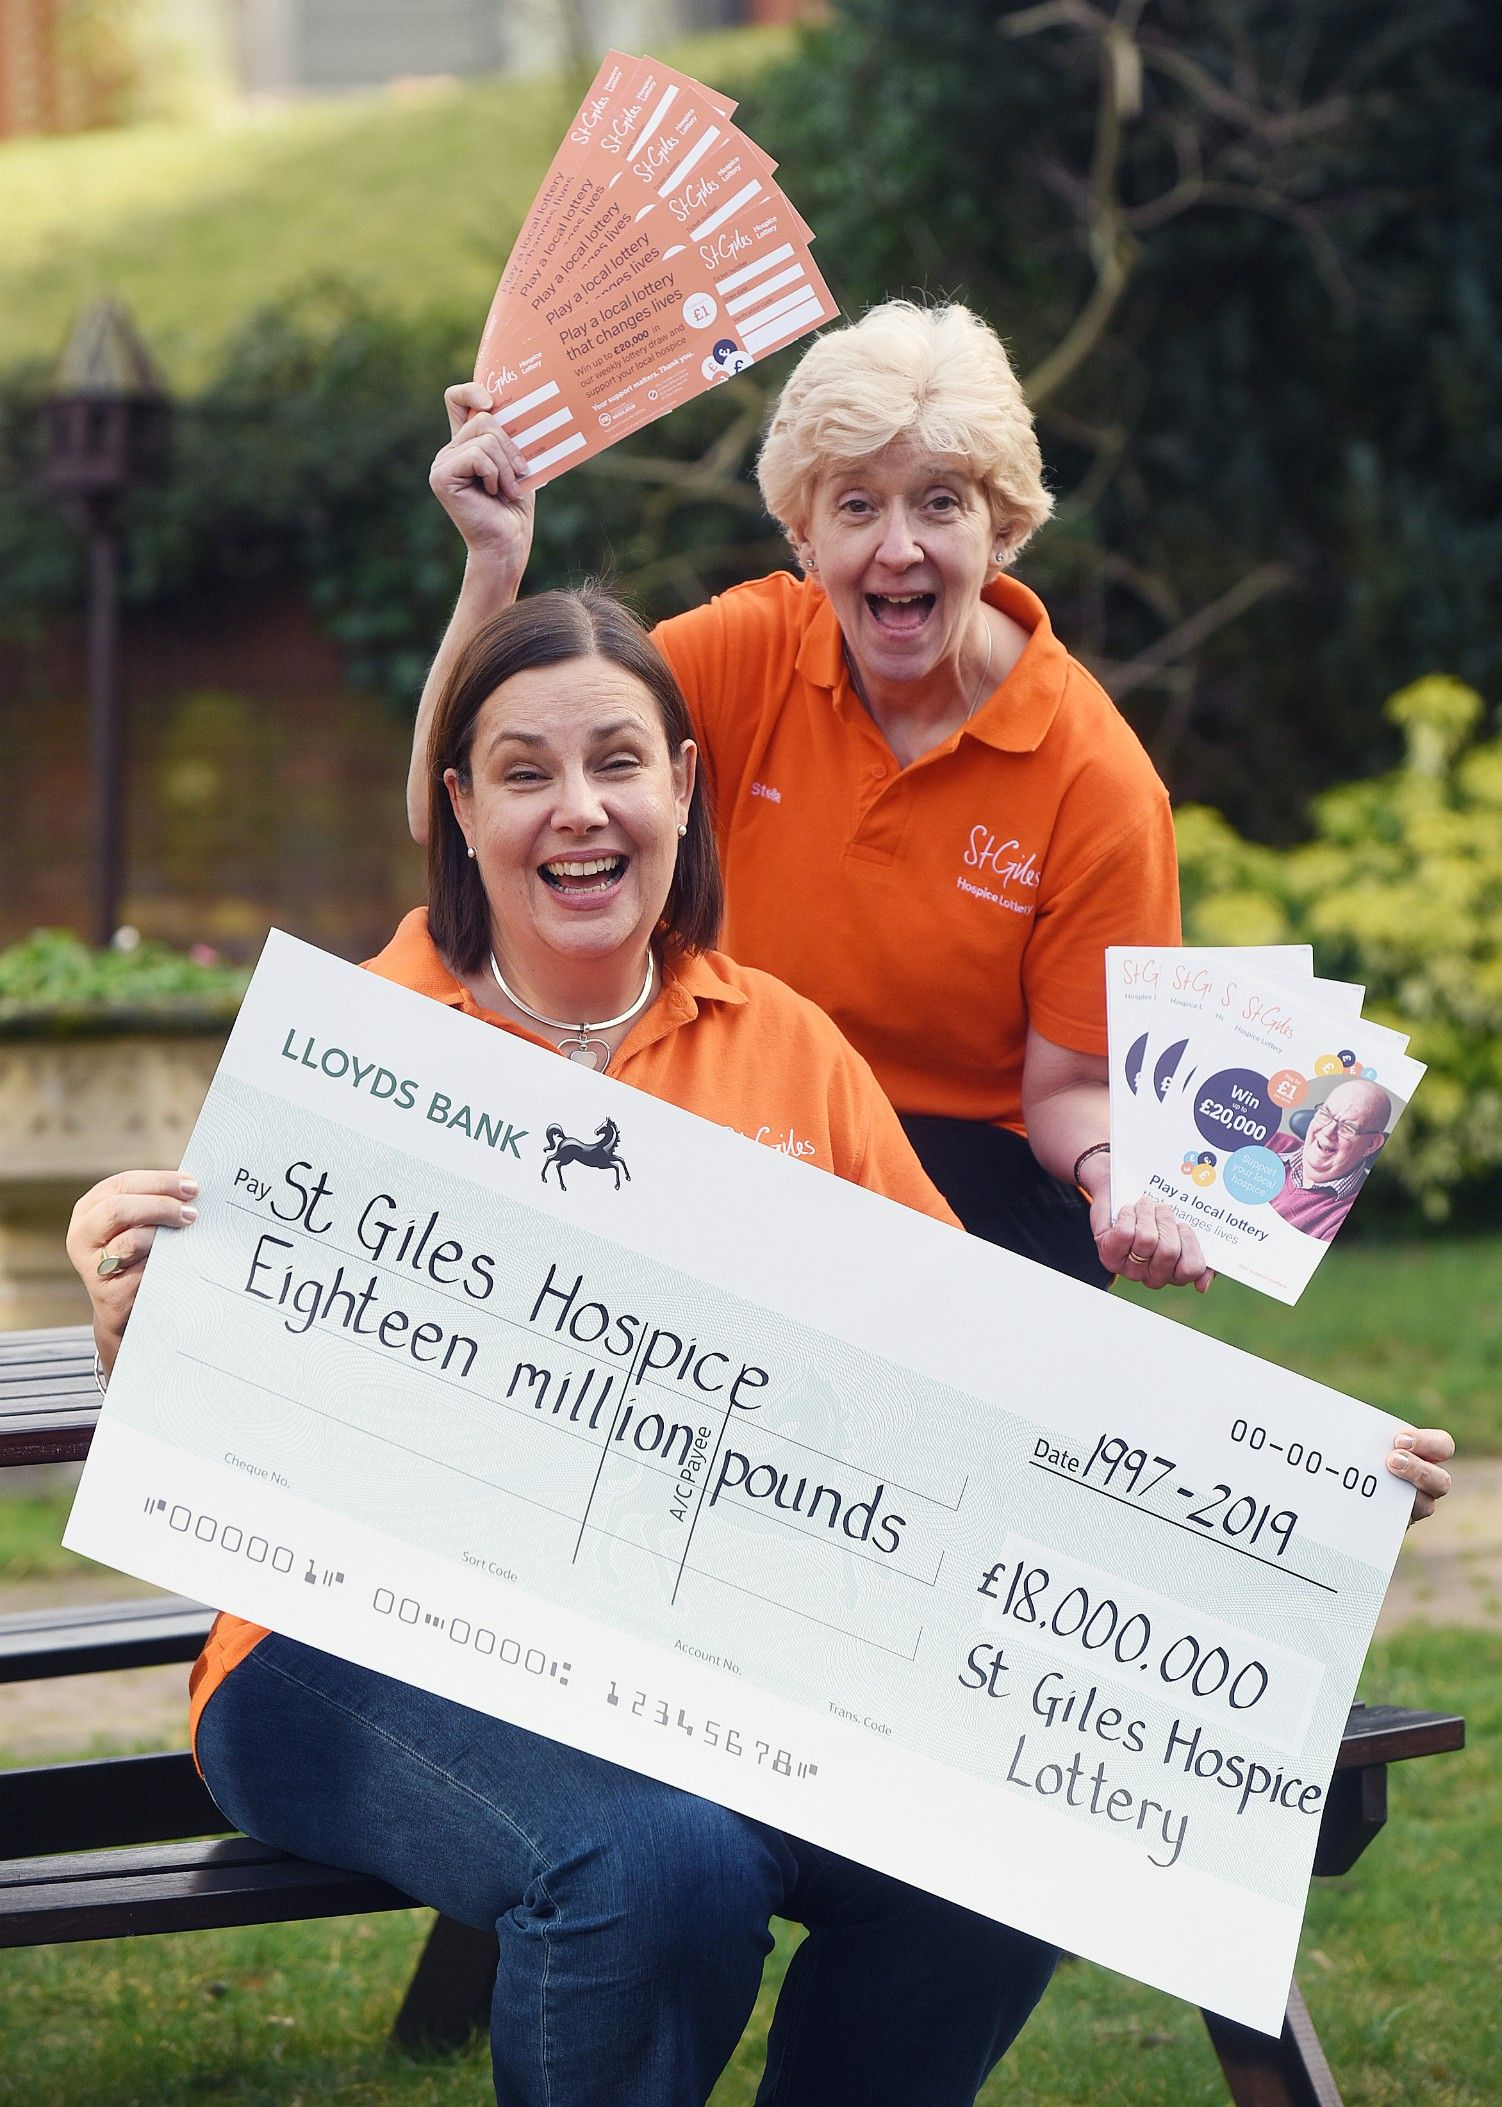 St Giles Hospice thanks lottery players for 22 years of fundraising success